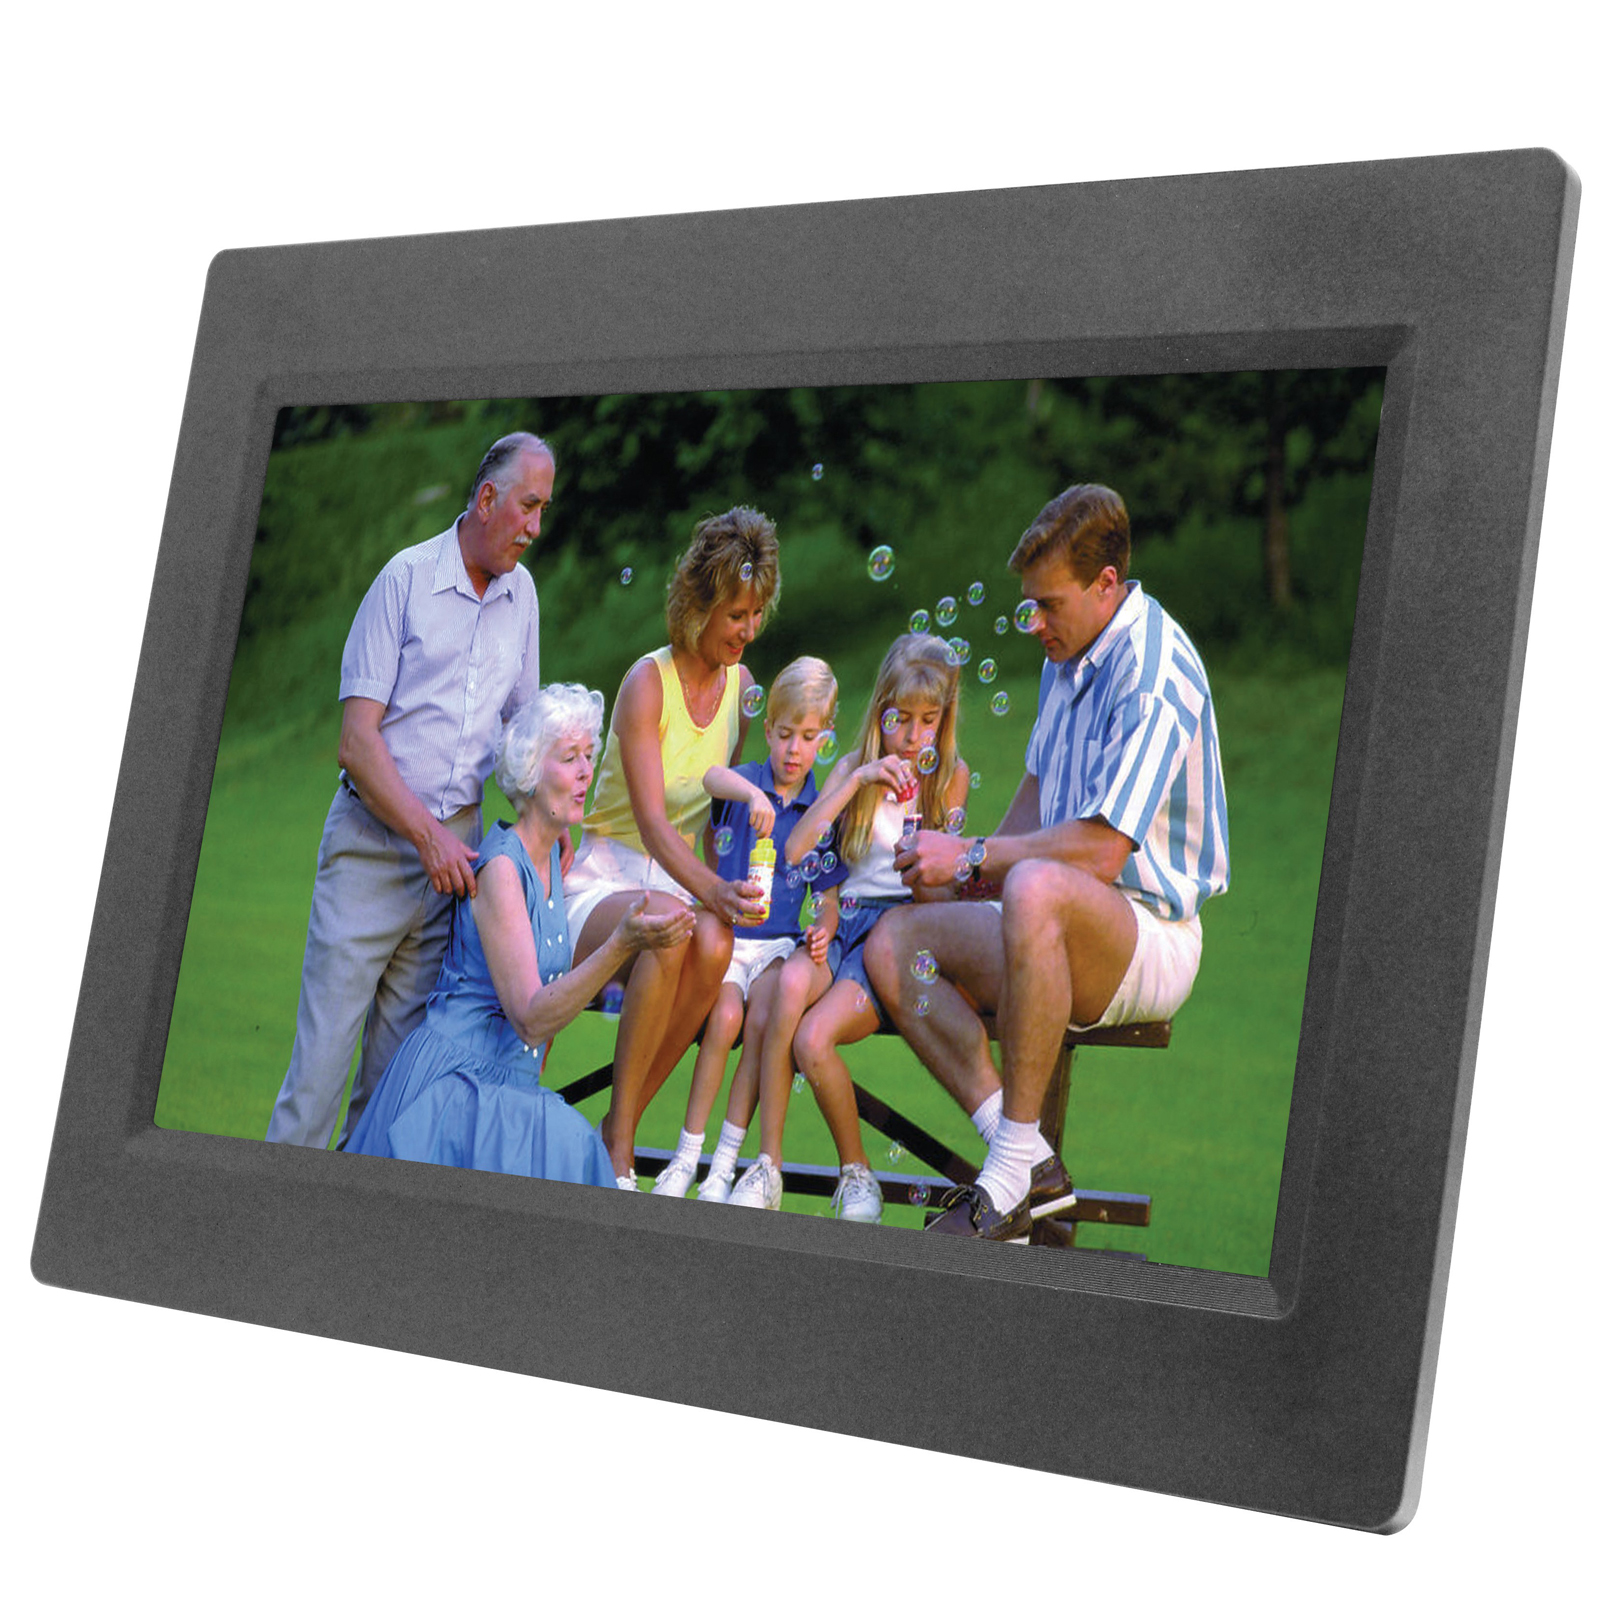 Kmart Digital Photo Frame Naxa 97086422m 10 Quot Tft Led Digital Photo Frame